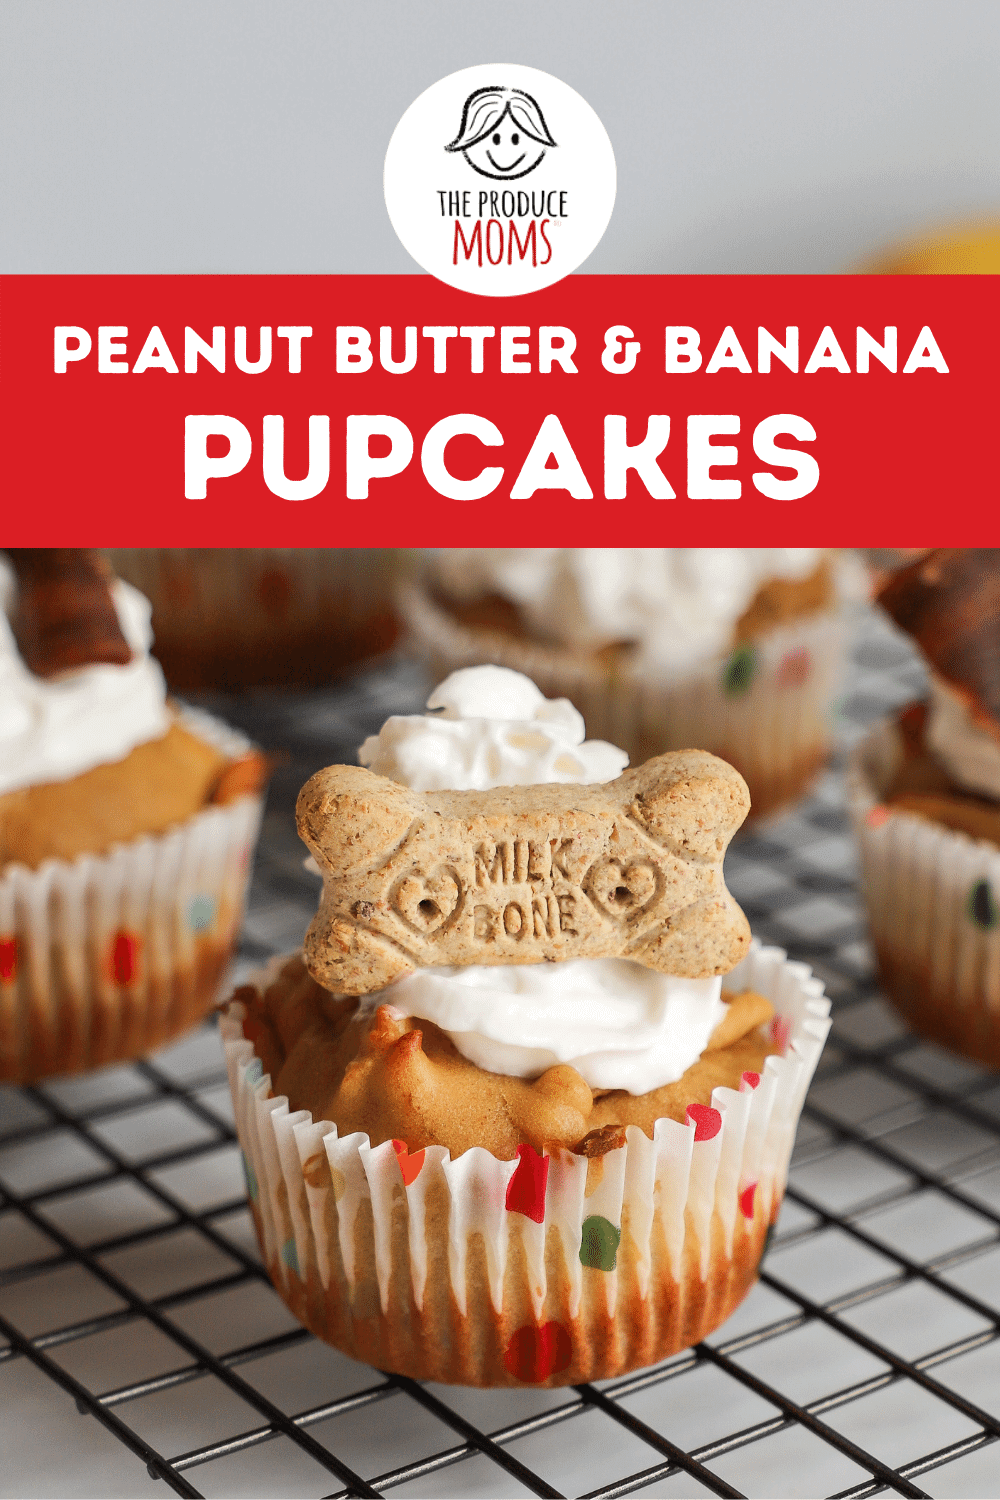 Peanut Butter and Banana Pupcakes